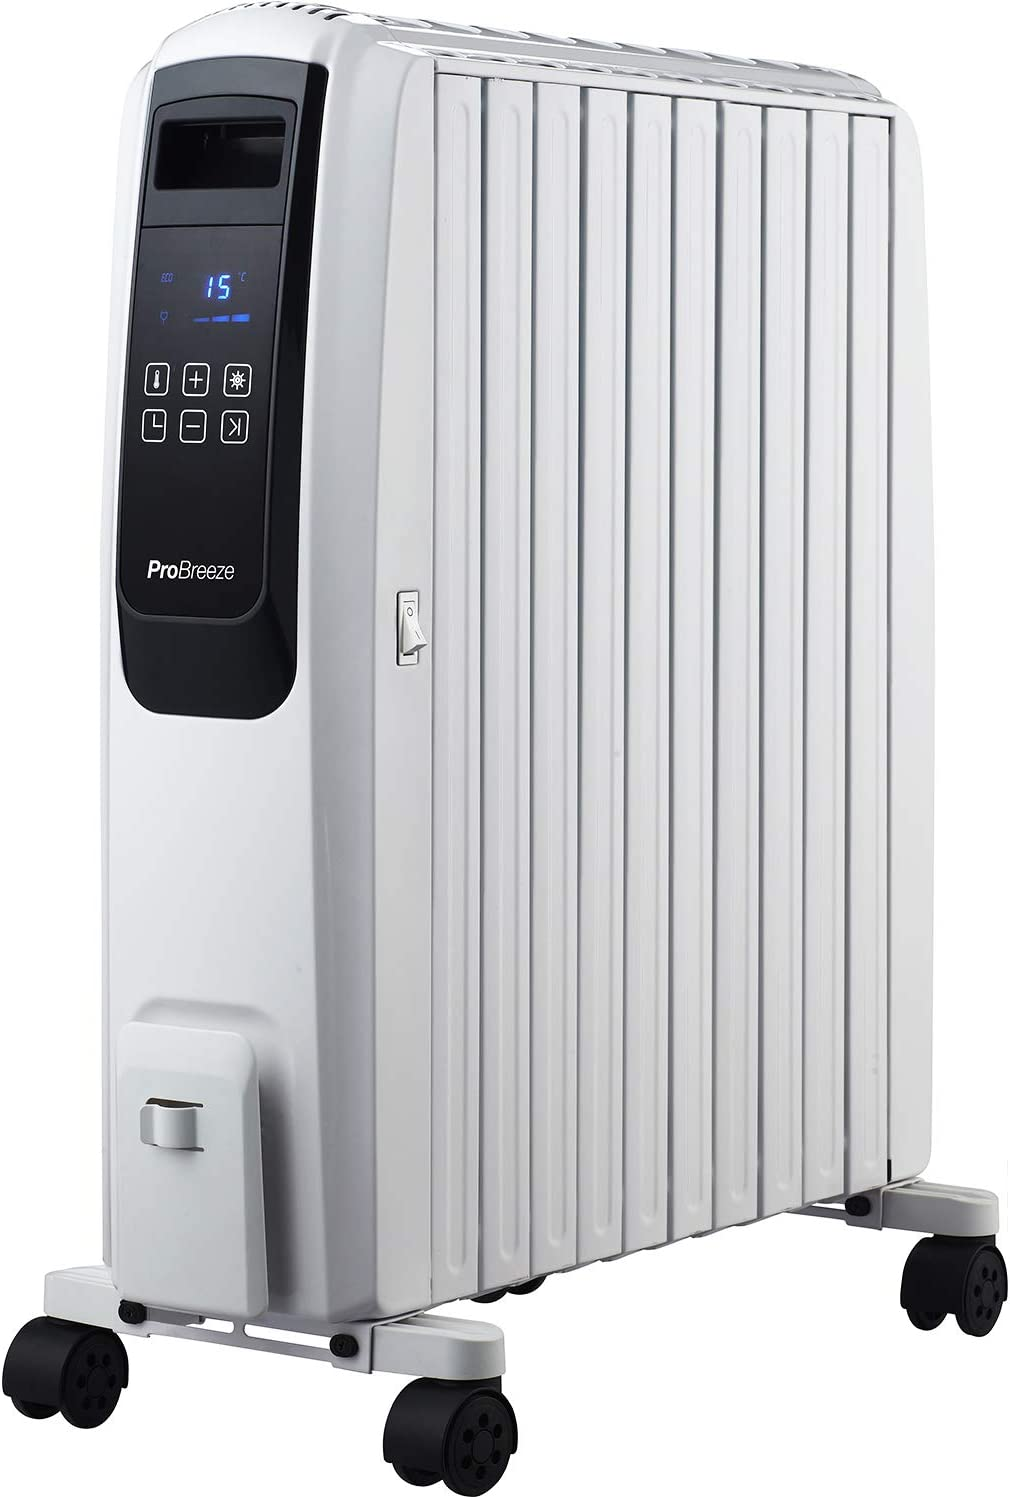 Pro Breeze 2500W Digital Oil Filled Radiator, 10 Fin – Portable Electric Heater with LED Display, Built-in Timer, 4 Heat Settings, Thermostat, Safety Cut-Off and Remote Control